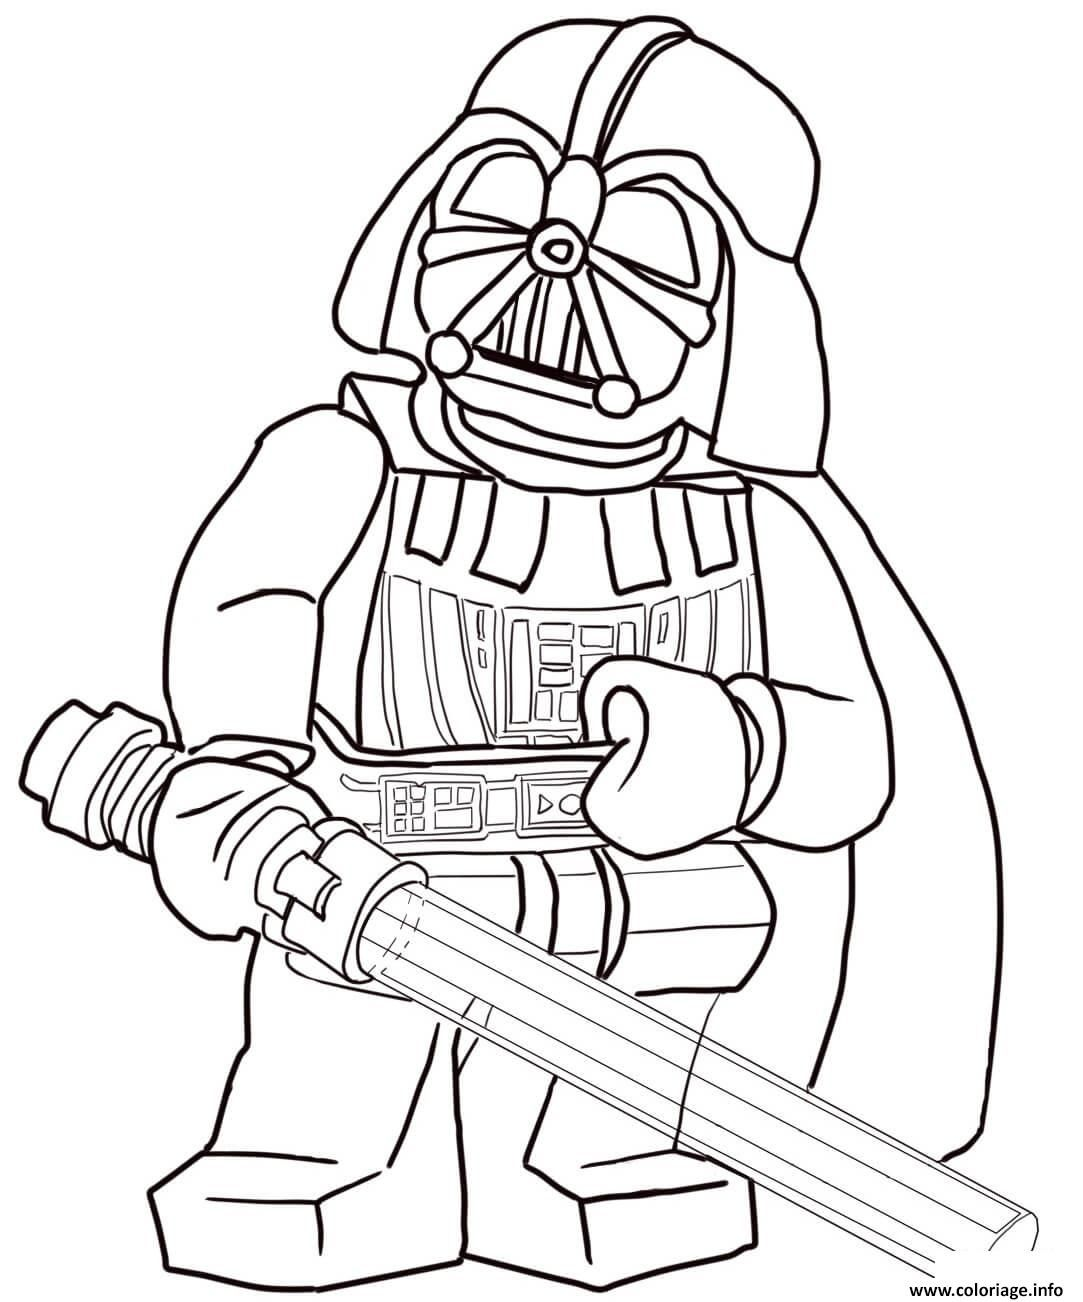 Coloriage Lego Star Wars 3 Movie Dessin Dedans Star Wars